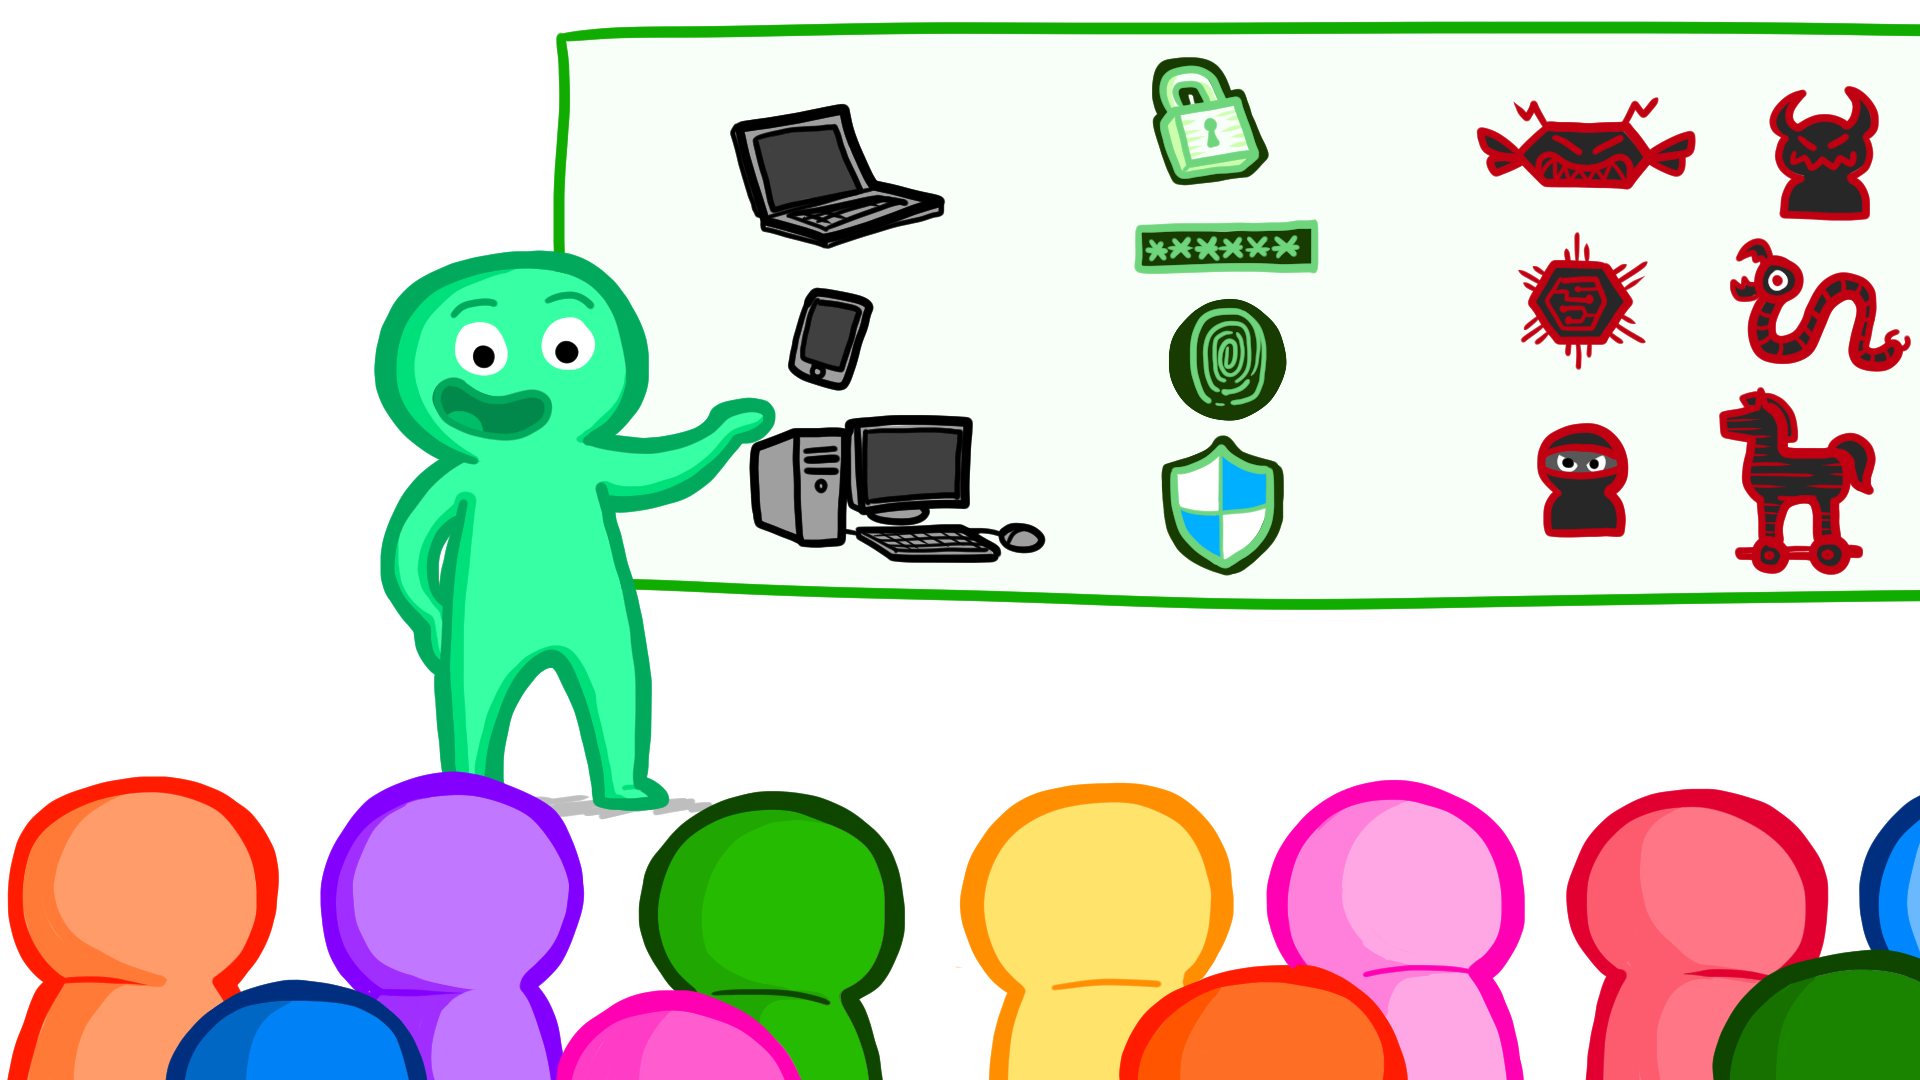 Illustration of a teacher presenting to a class, using familiar cybersecurity symbols